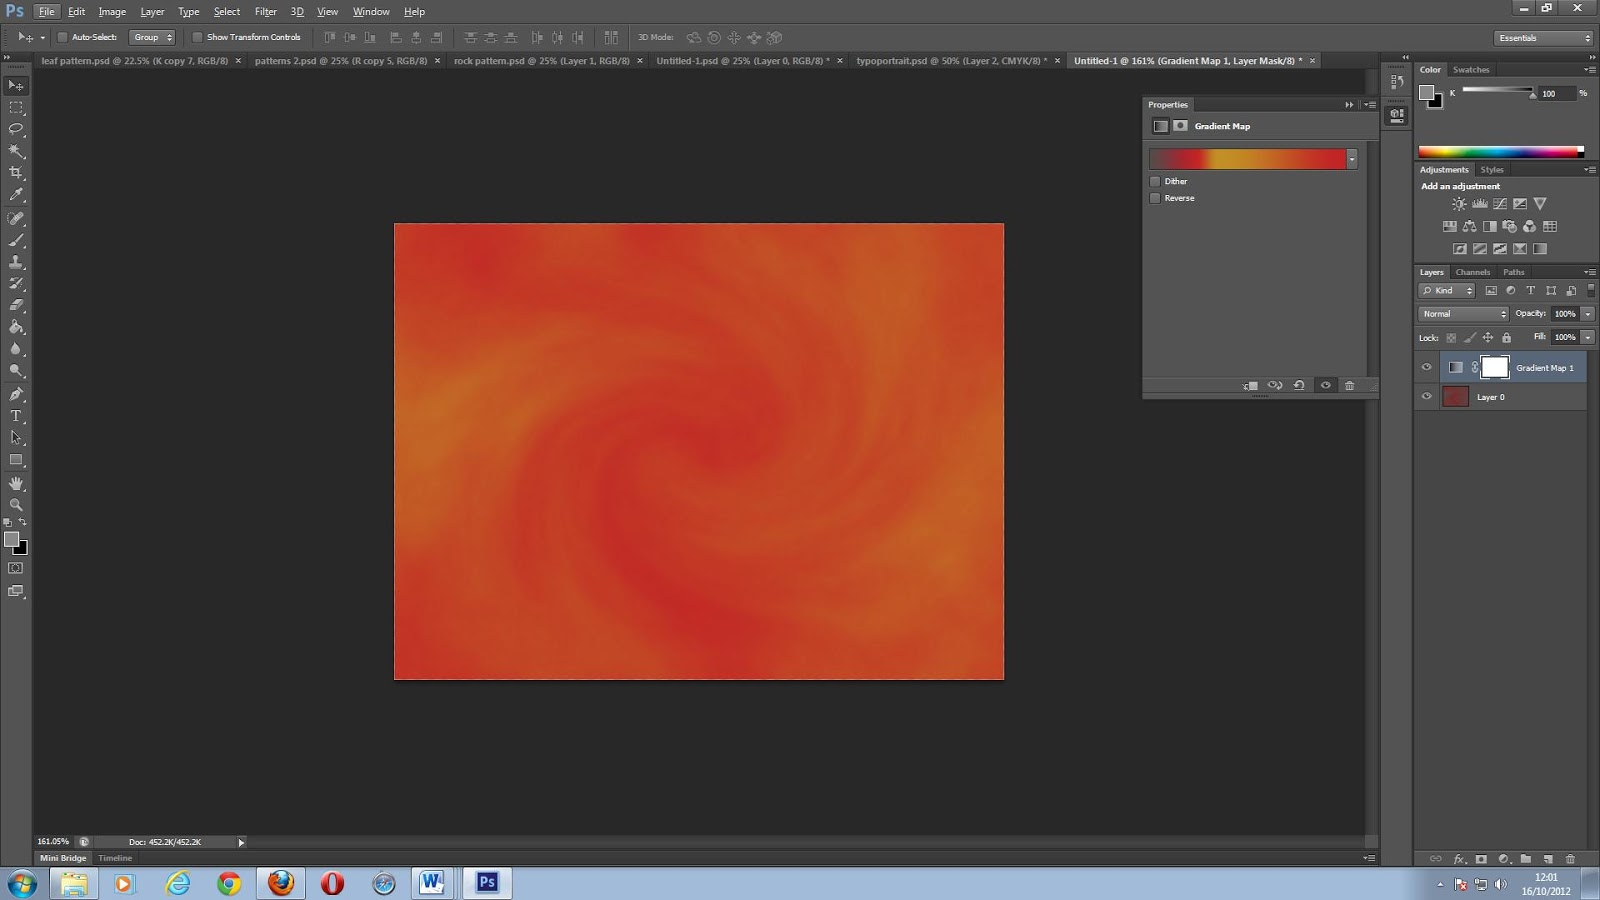 by choosing filter render clouds this creates the cloud texture above which can be changed each time as a random selction of the pattern is created each